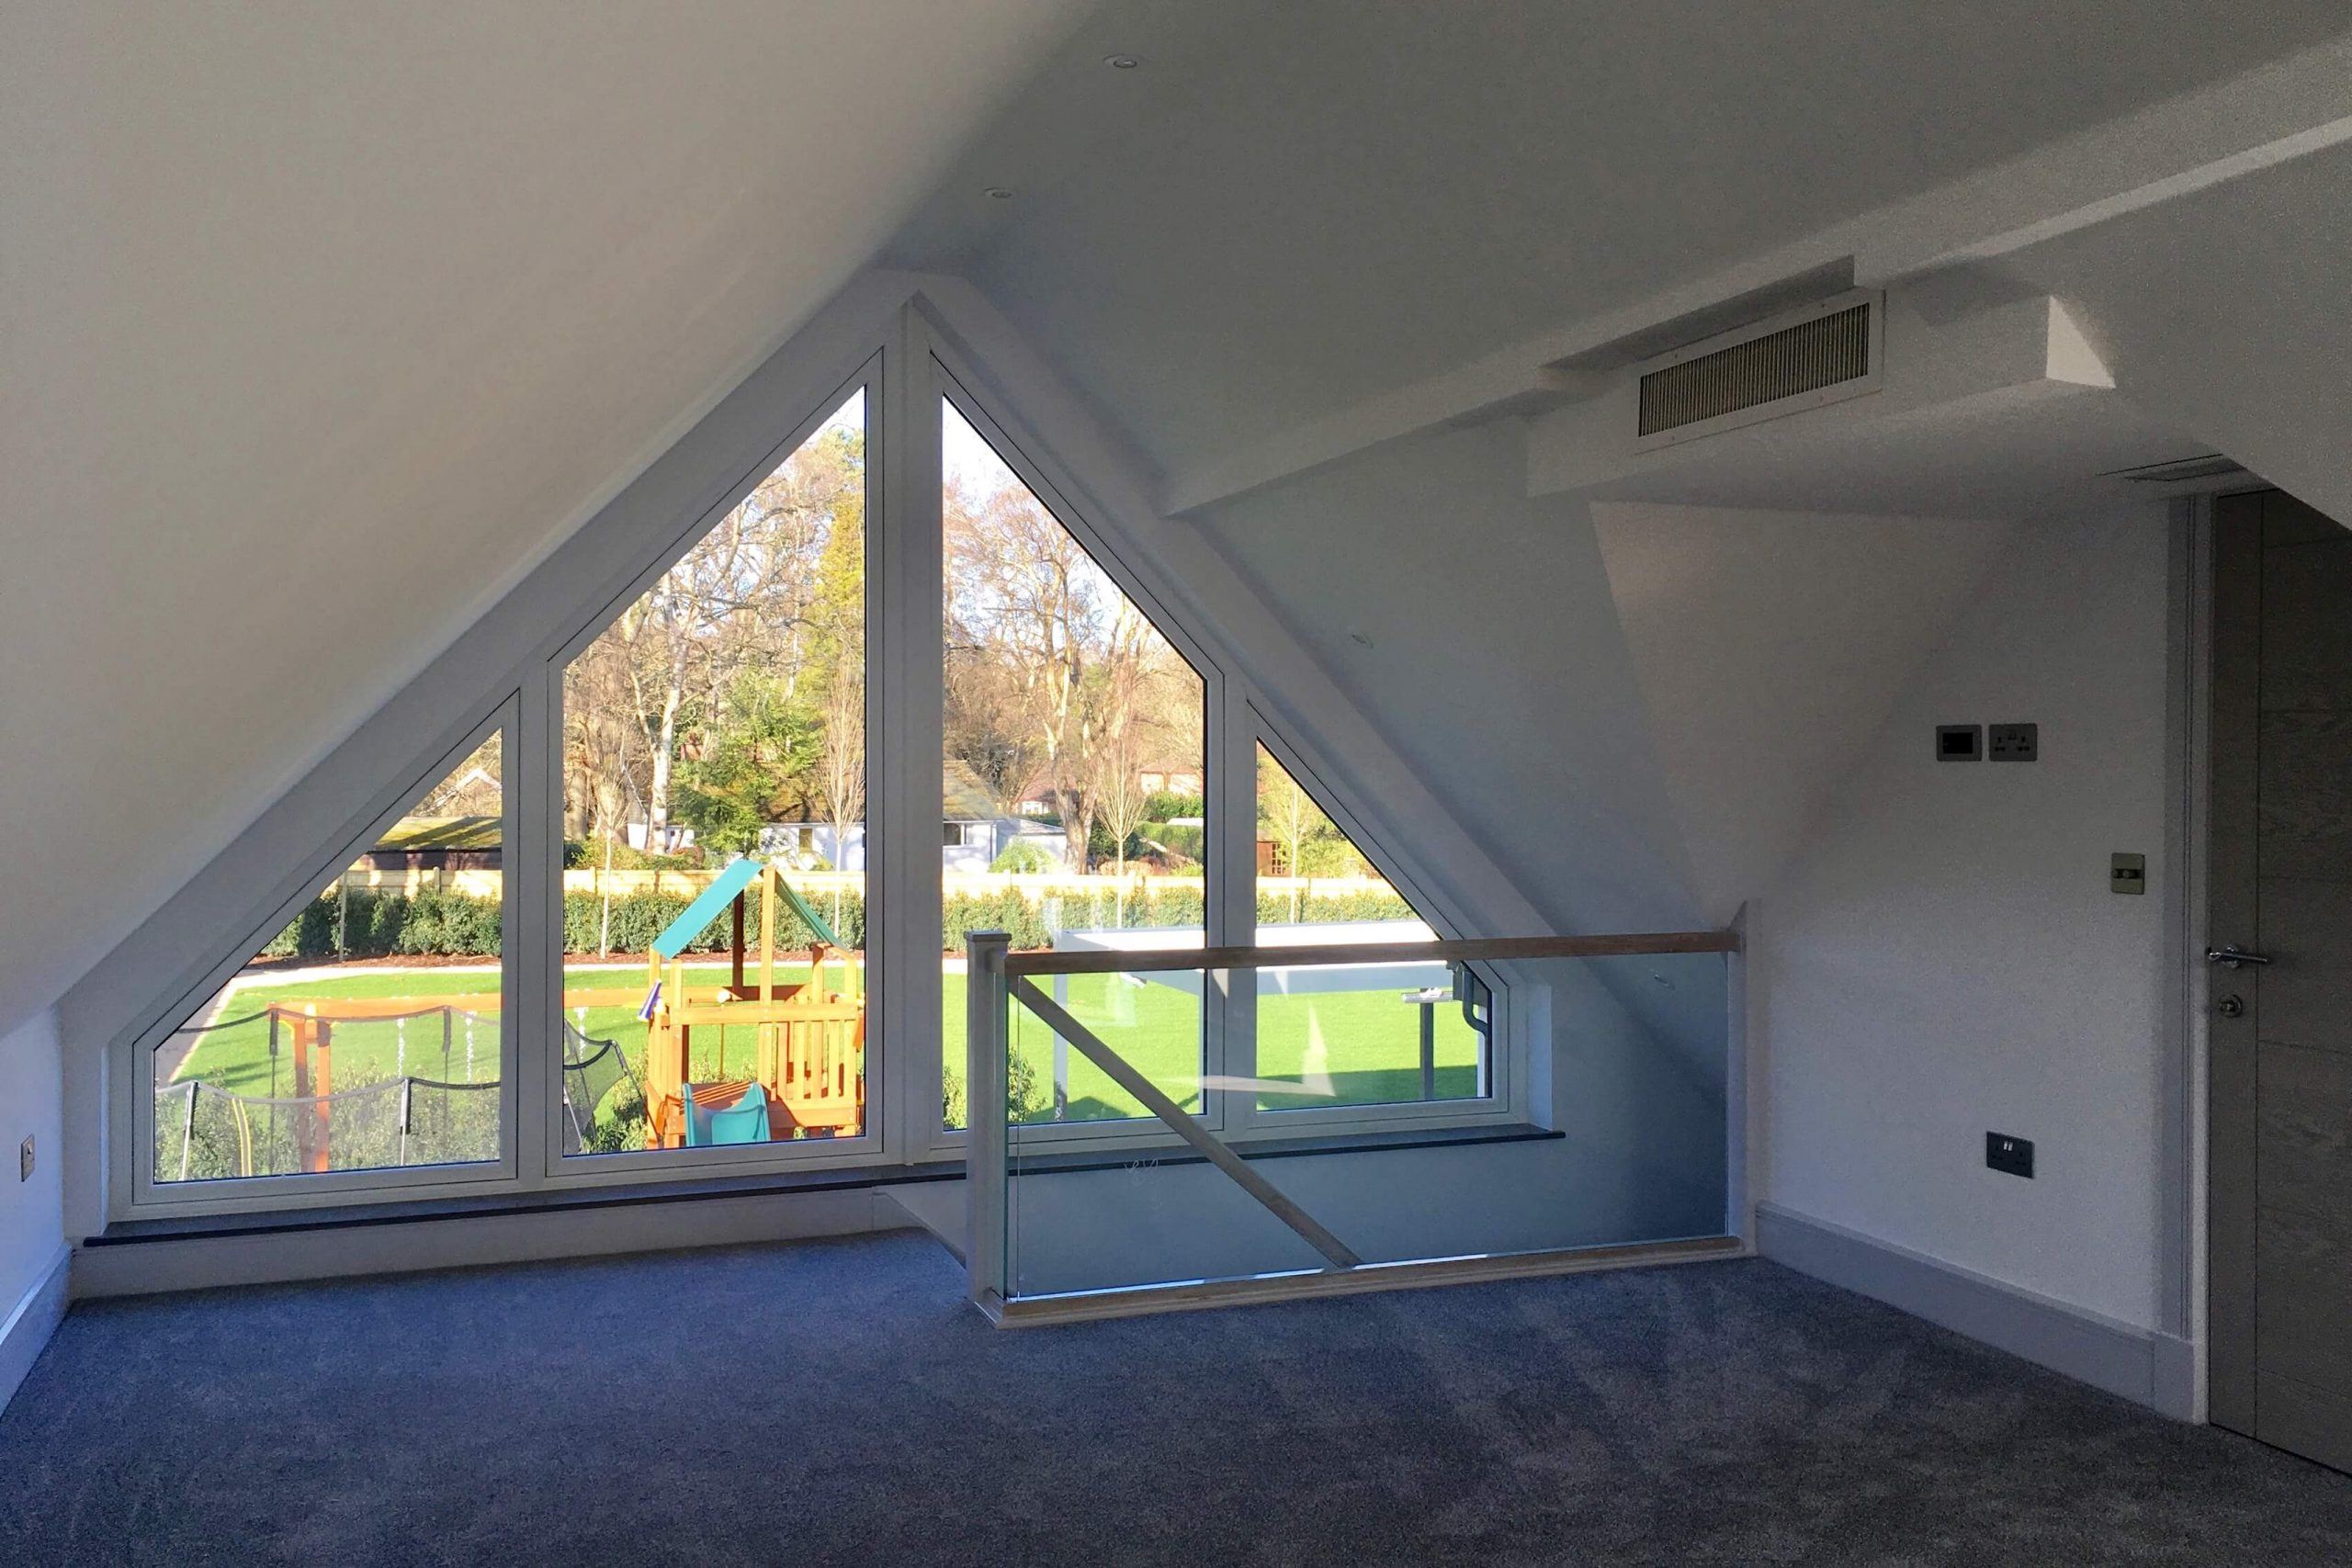 Scandia Hus new build project upstairs bedroom overlooking garden with 2 air grills by door as part of MVHR and air conditioning system by SubCool FM